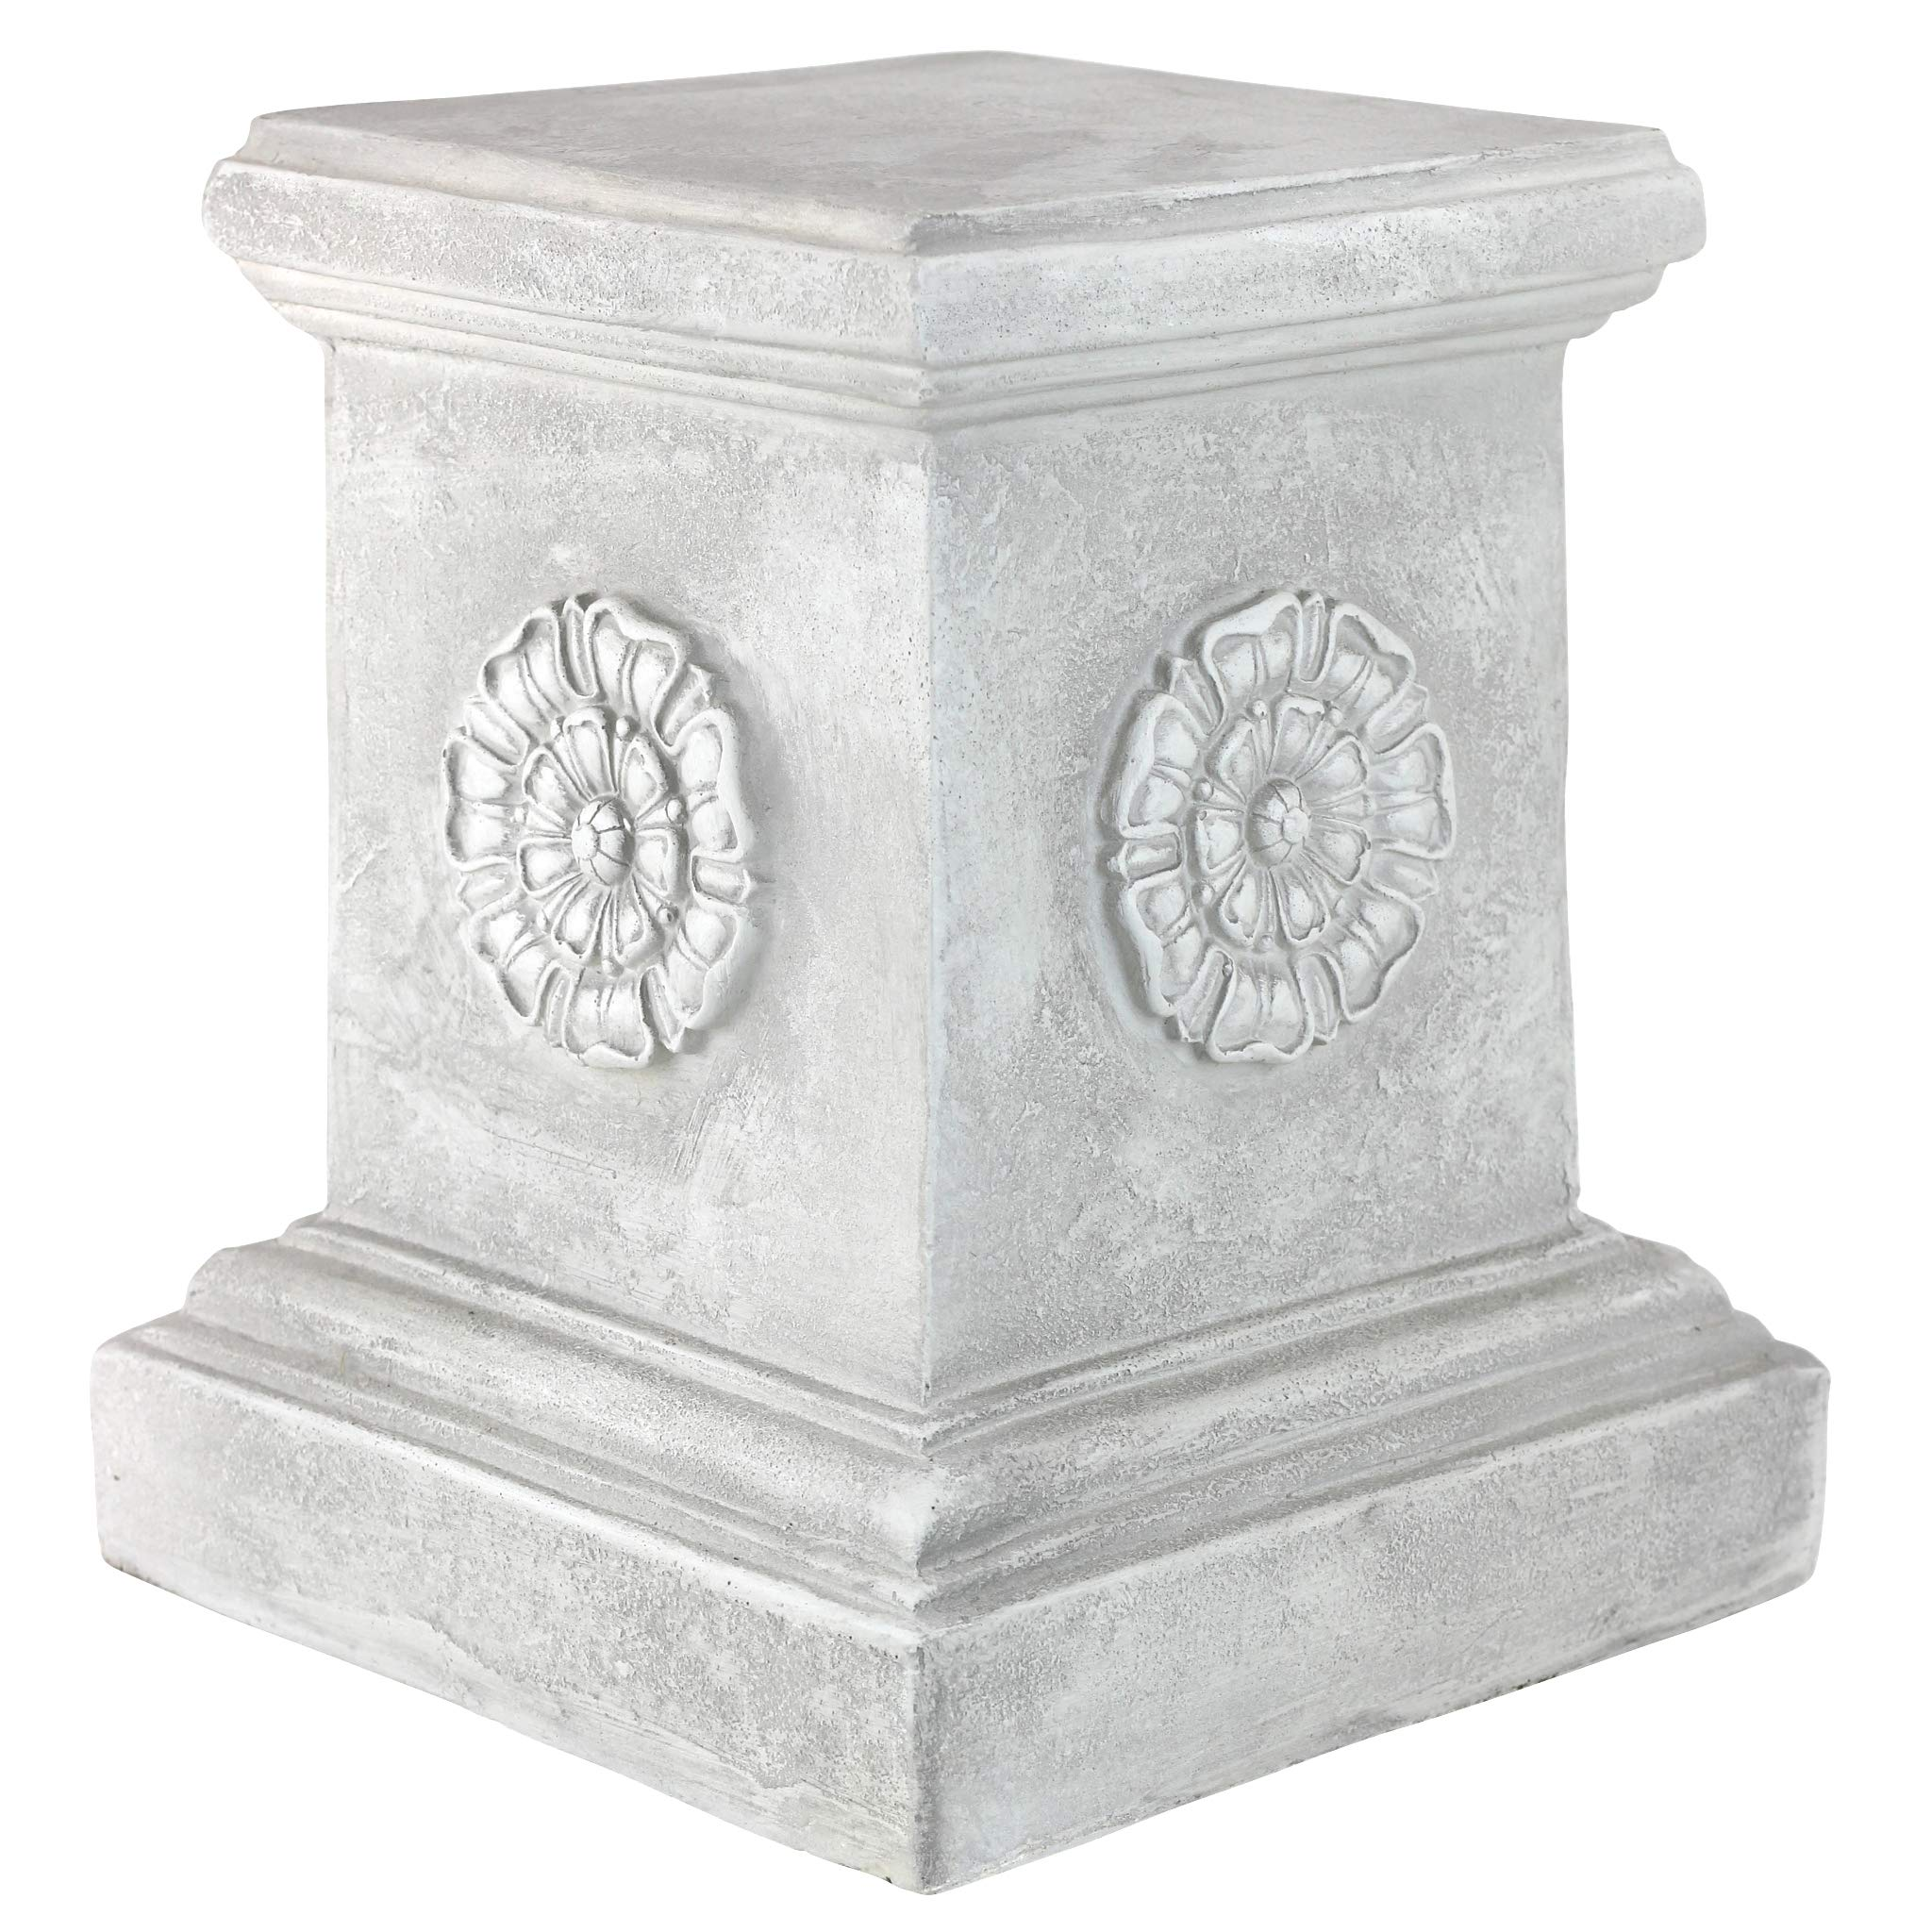 Design Toscano English Rosette Sculptural Garden Plinth Base Riser, Large 13 Inch, Polyresin, Antique Stone by Design Toscano (Image #2)